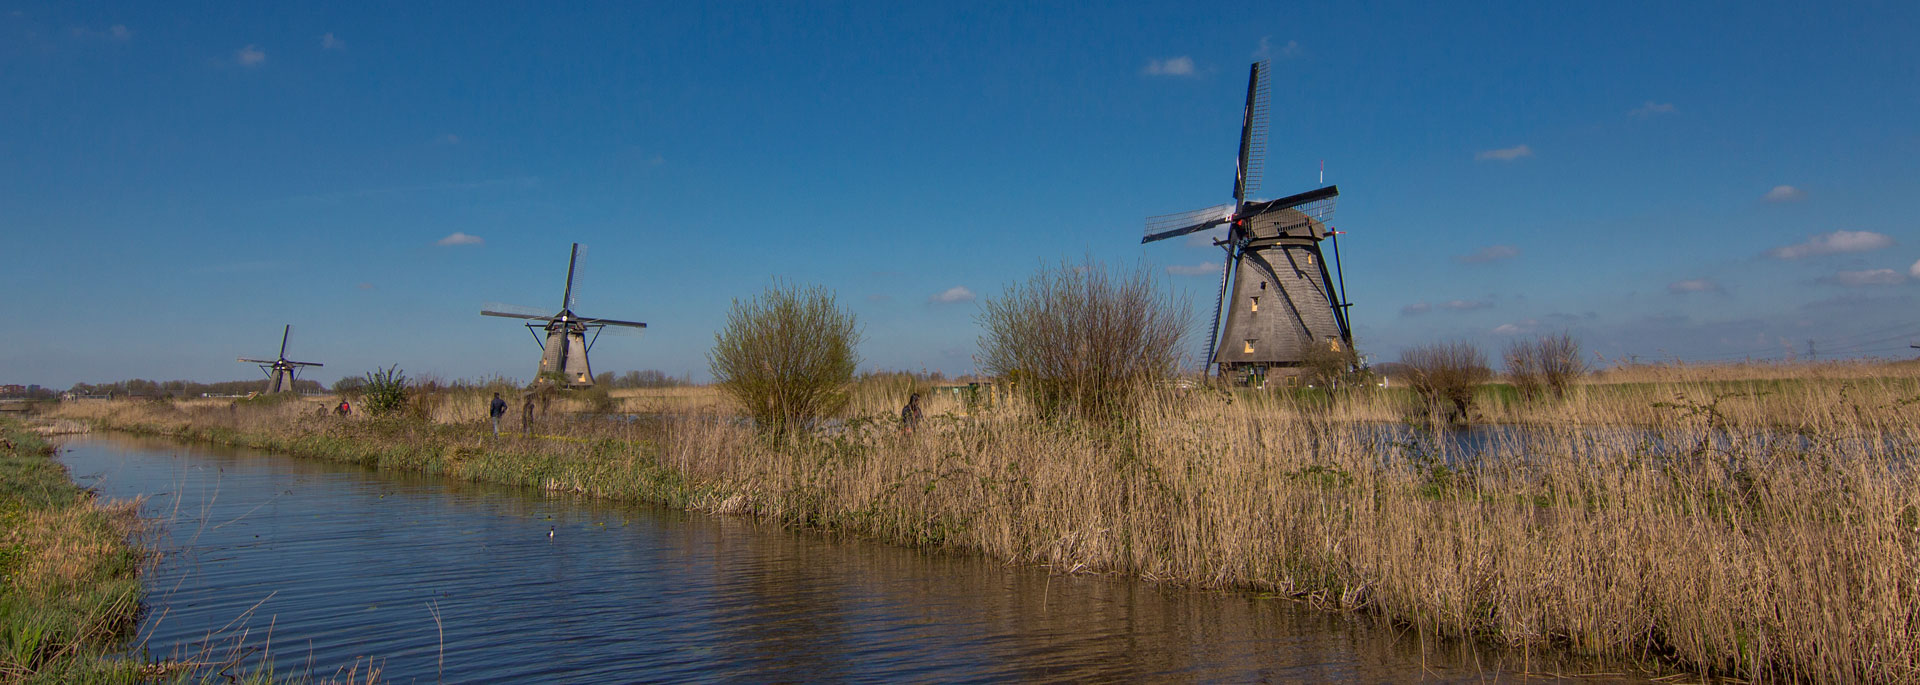 Fotos: Windmühlen vom Kinderdijk, Holland